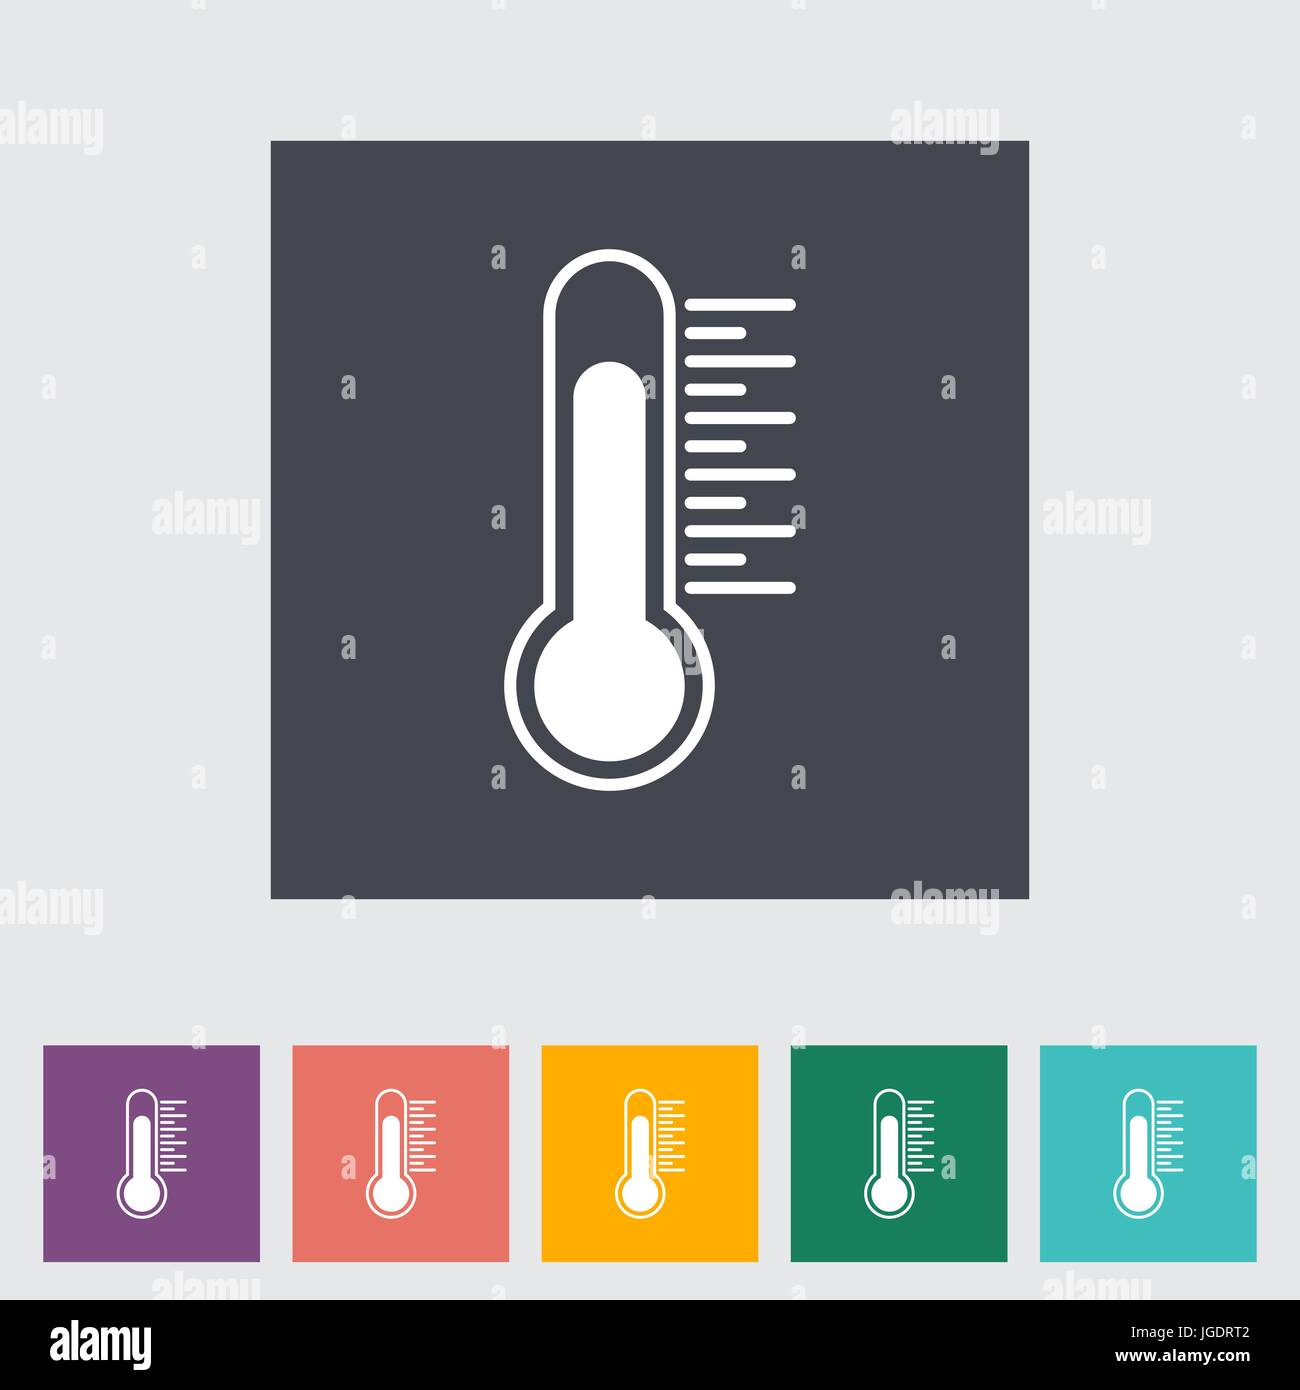 Laboratory Thermometer Stock Photos Amp Laboratory